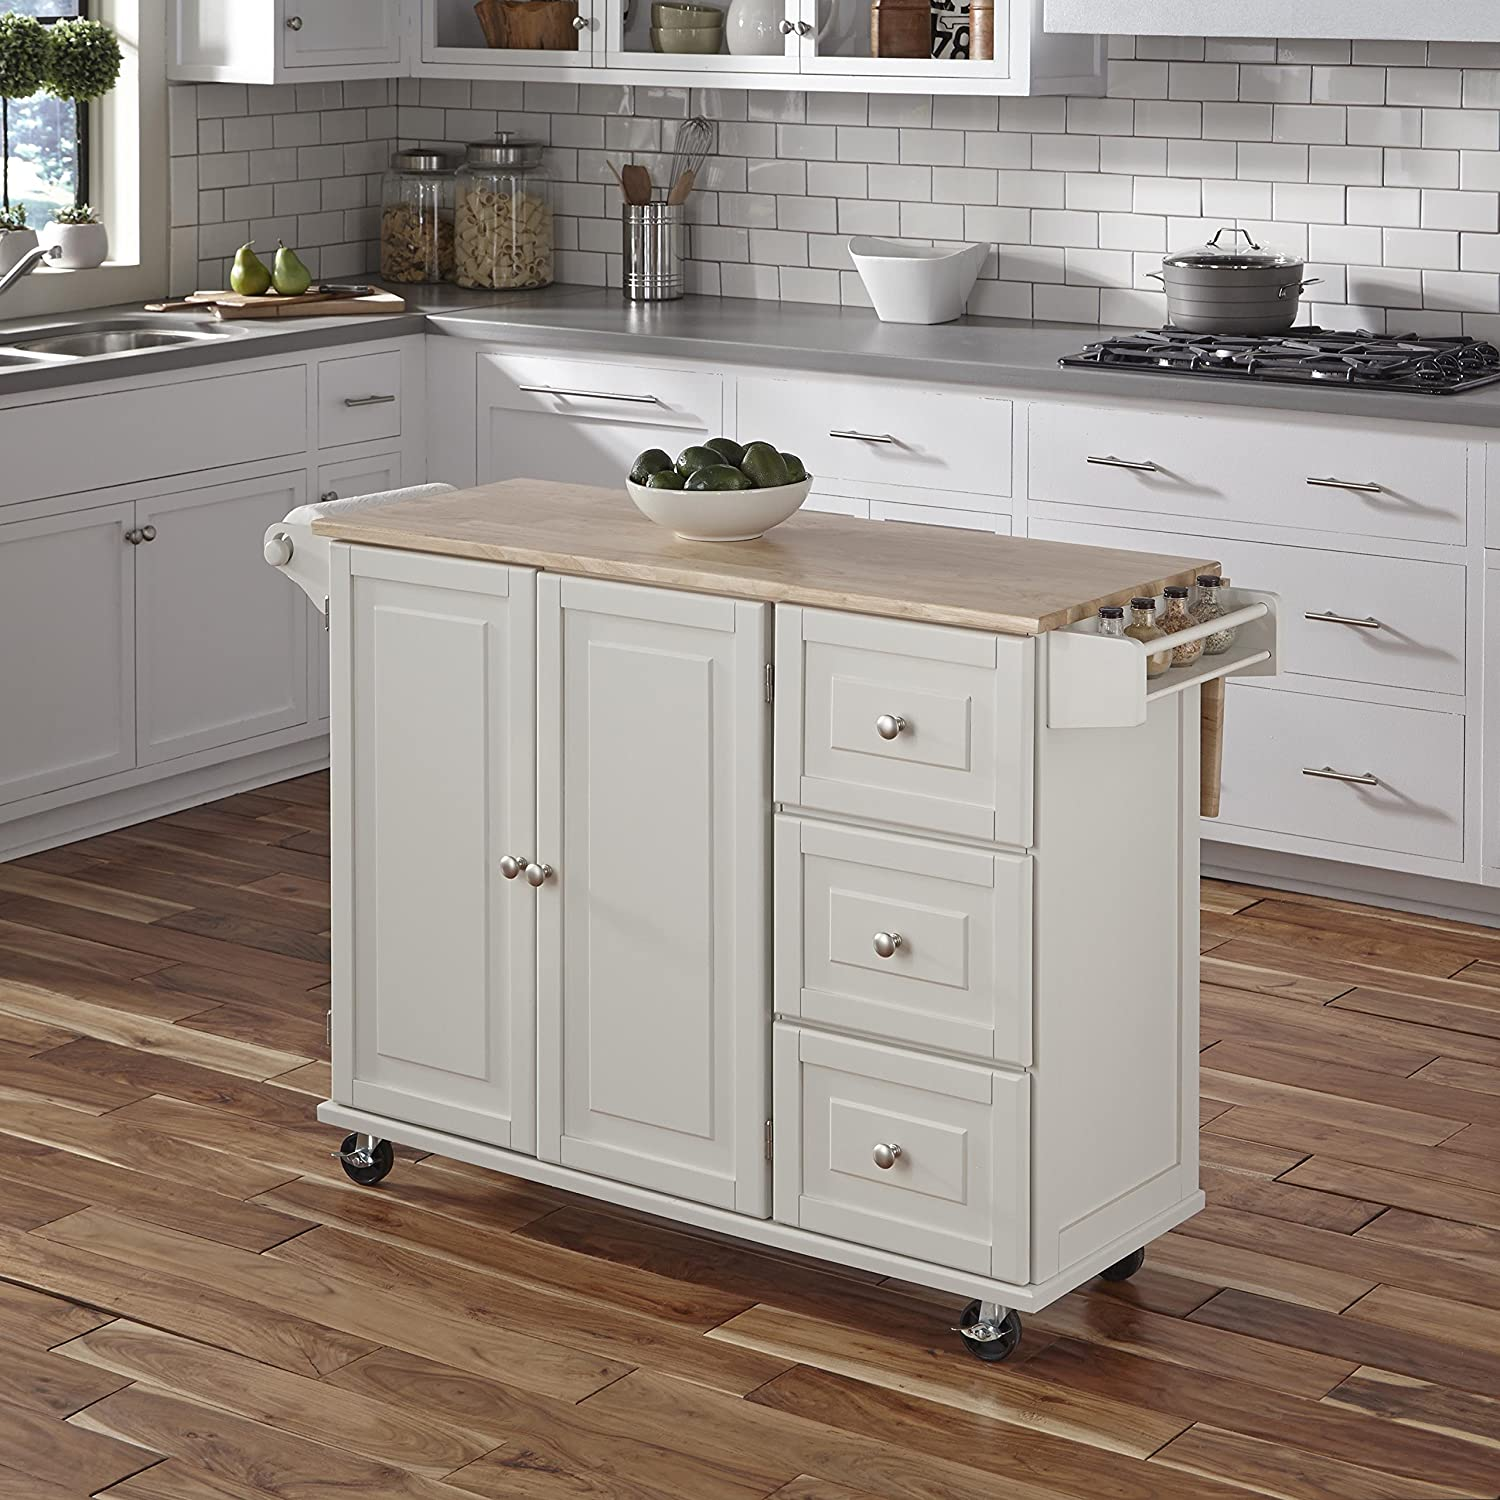 Amazon Com Home Styles Liberty Kitchen Cart With Wood Top White Kitchen Islands Carts